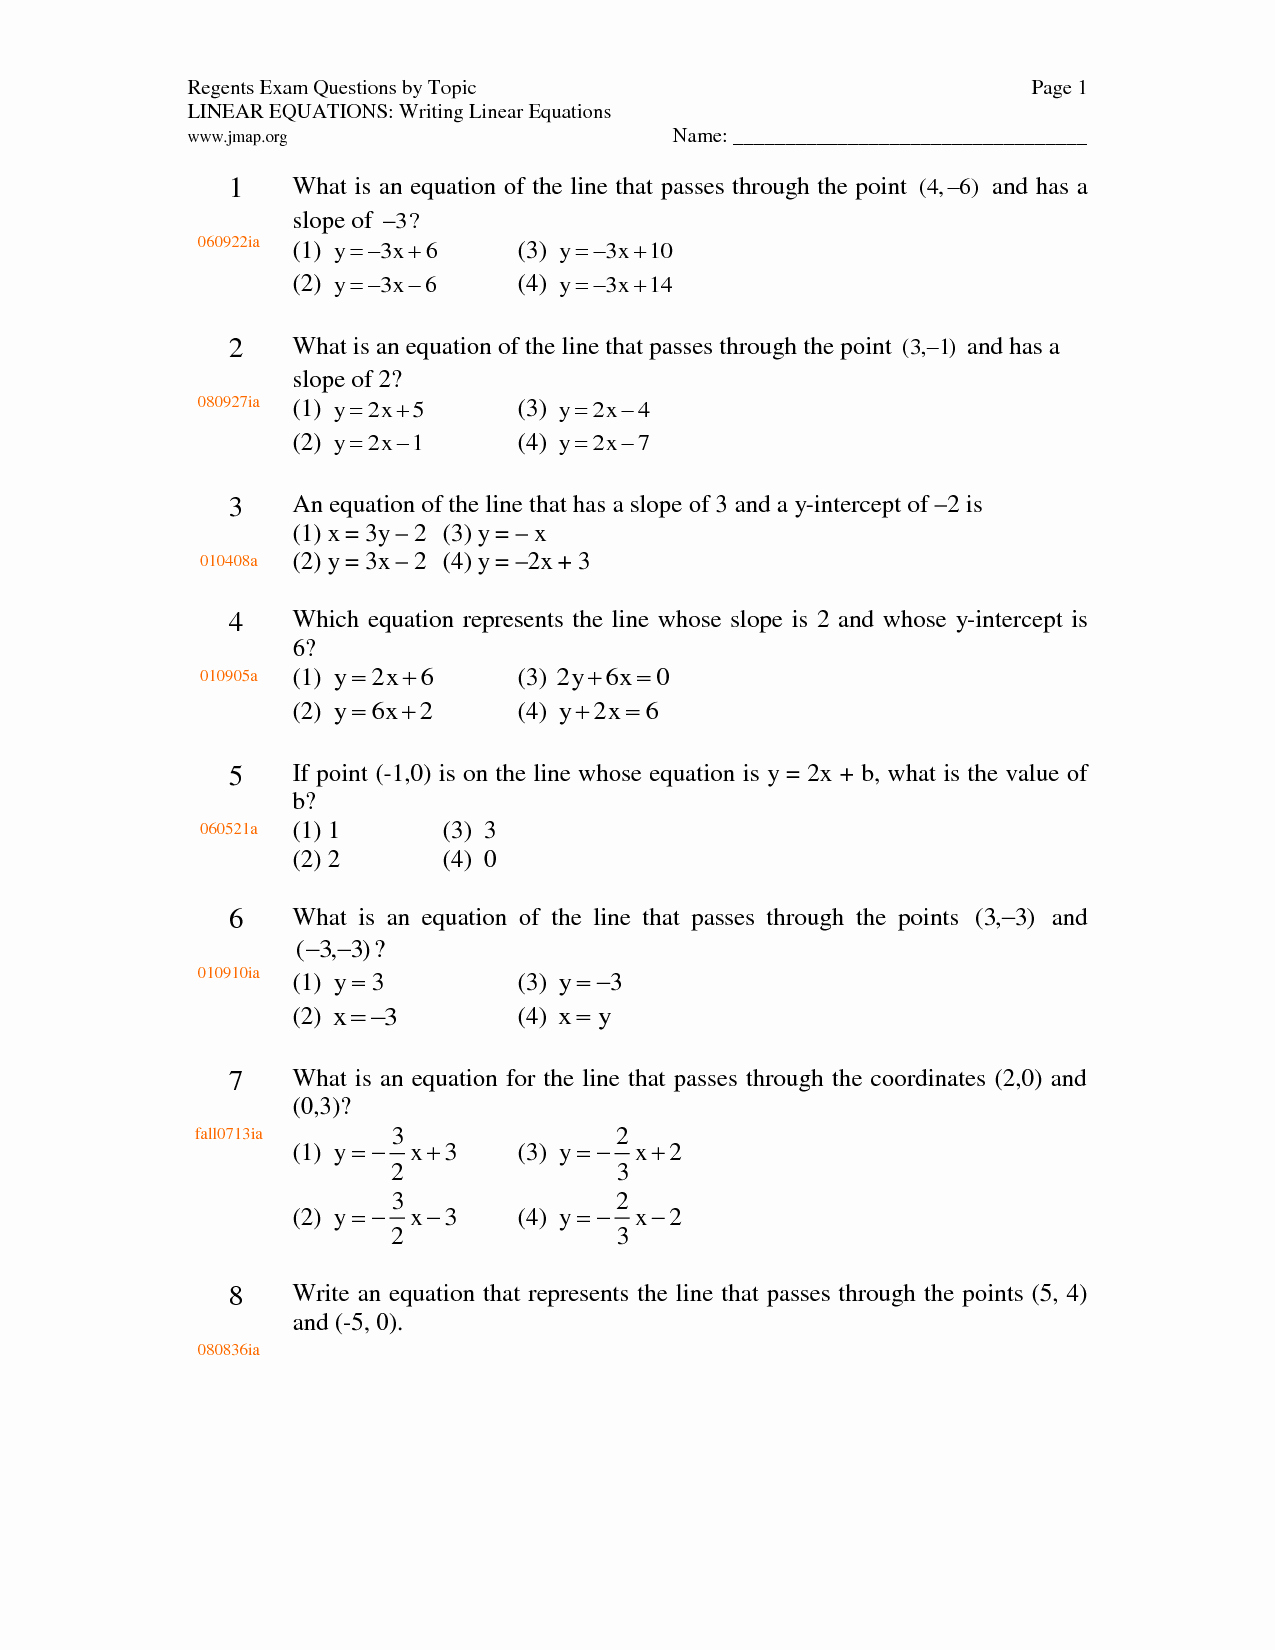 Writing Two Step Equations Worksheet Lovely Writing Linear Equations Worksheet Doc